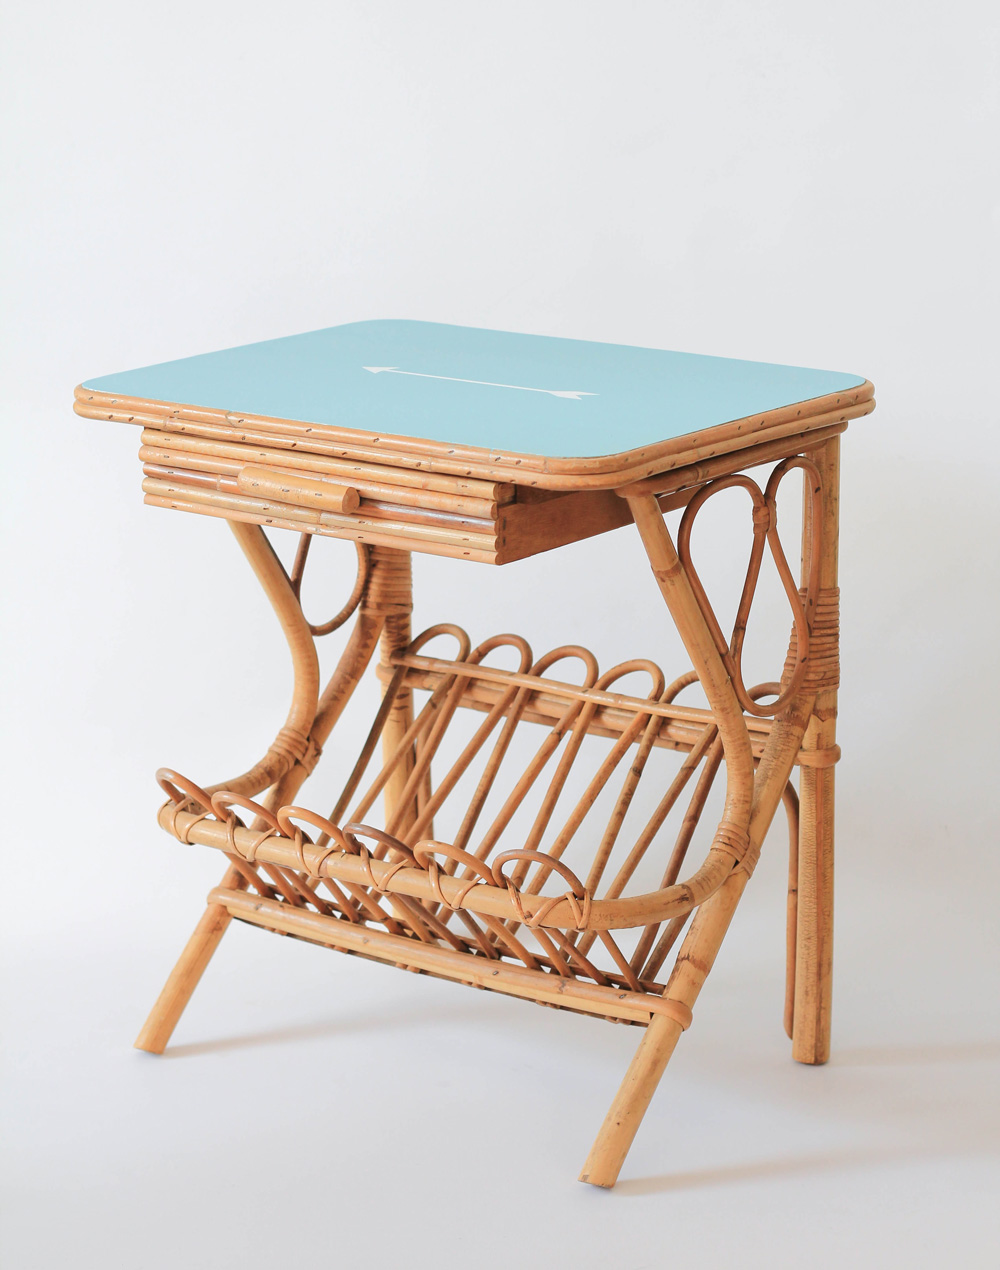 Chevet en rotin ann es 50 les happyvintage - Table de chevet rotin ...